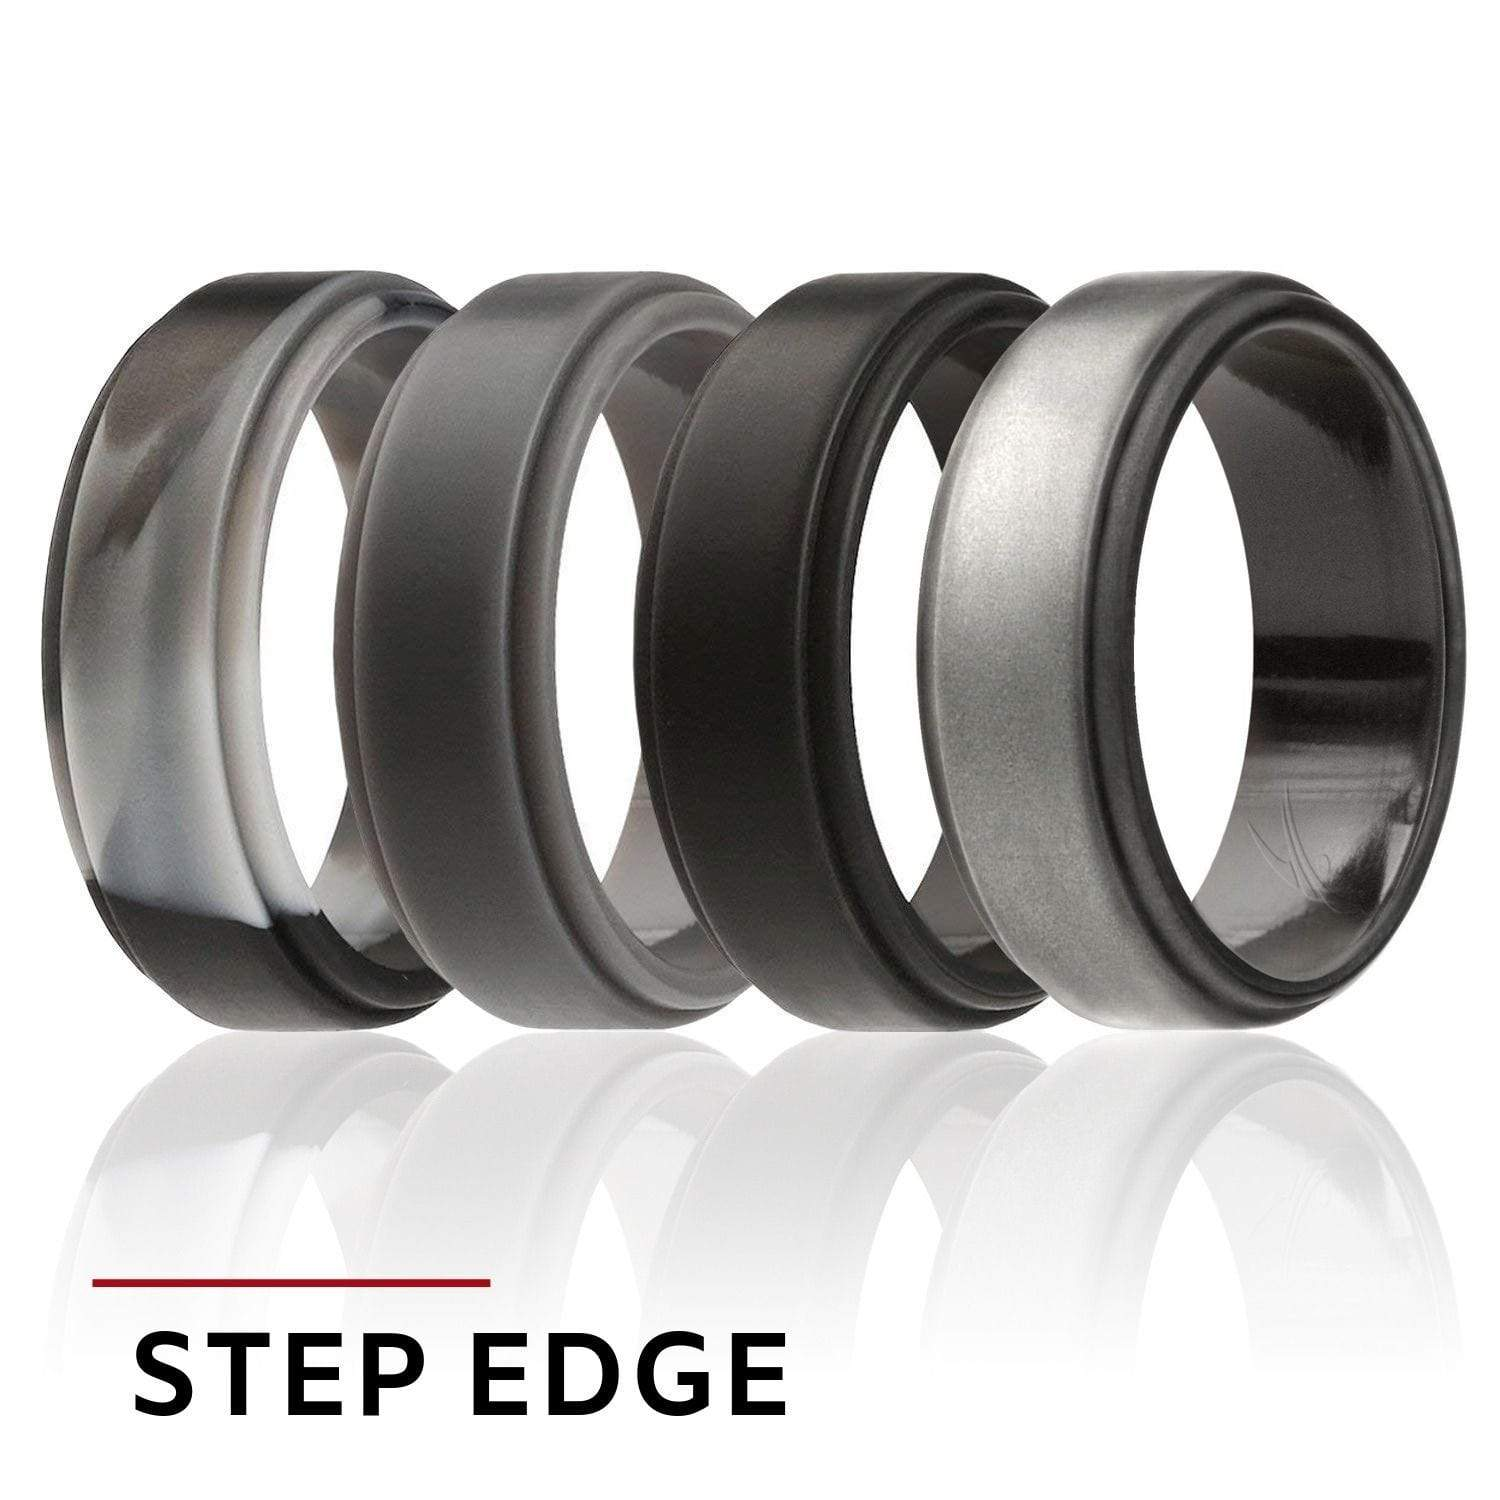 Silicon Wedding Bands.Roq Silicone Rings Shop Affordable Rubber Silicone Wedding Bands